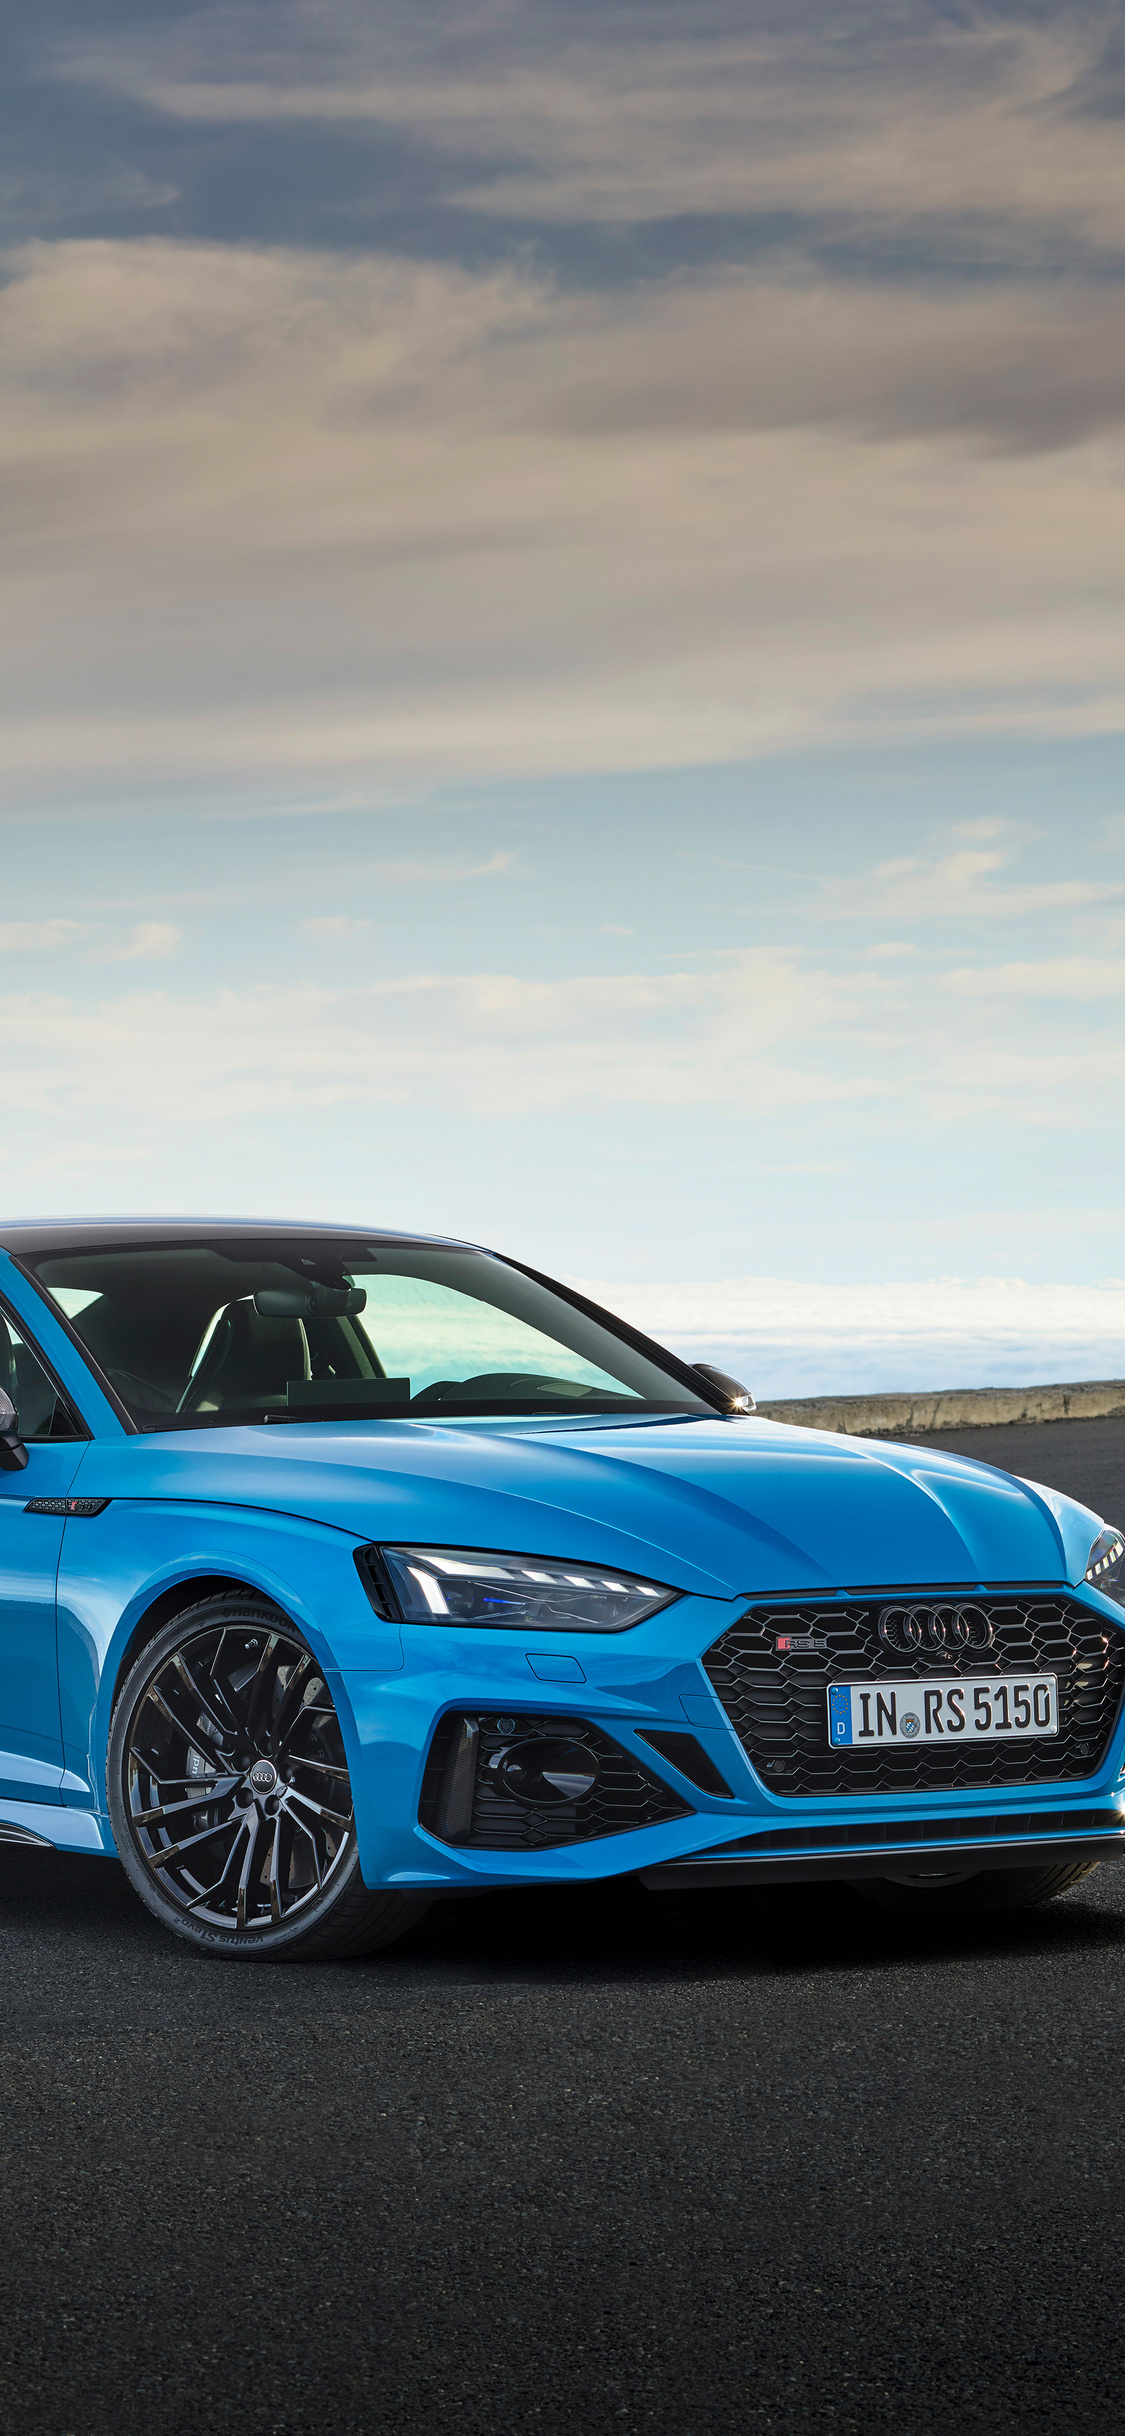 1125x2436 Audi Rs 5 Coupe 2020 Iphone Xs Iphone 10 Iphone X Hd 4k Wallpapers Images Backgrounds Photos And Pictures